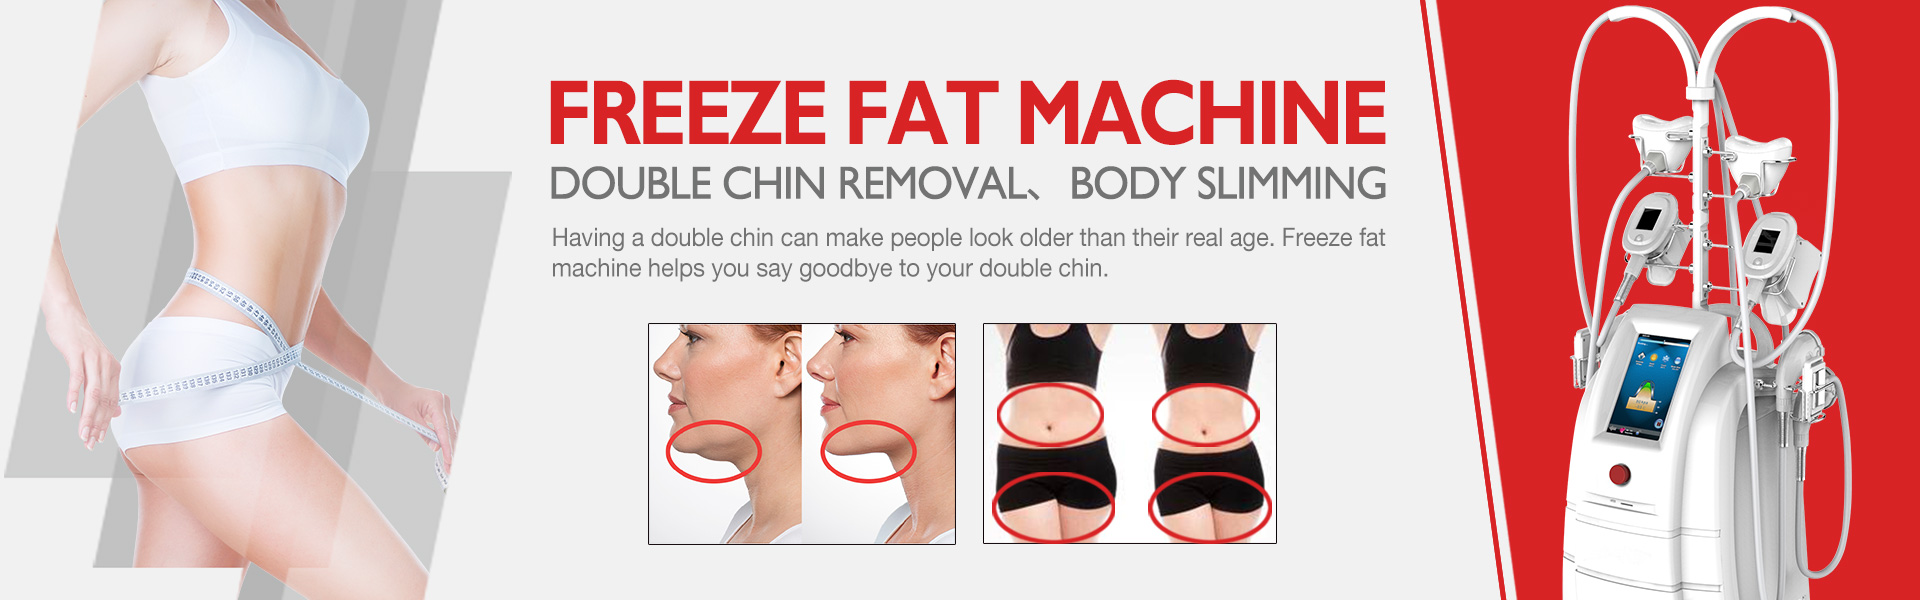 Freeze fat machine for double chin removal